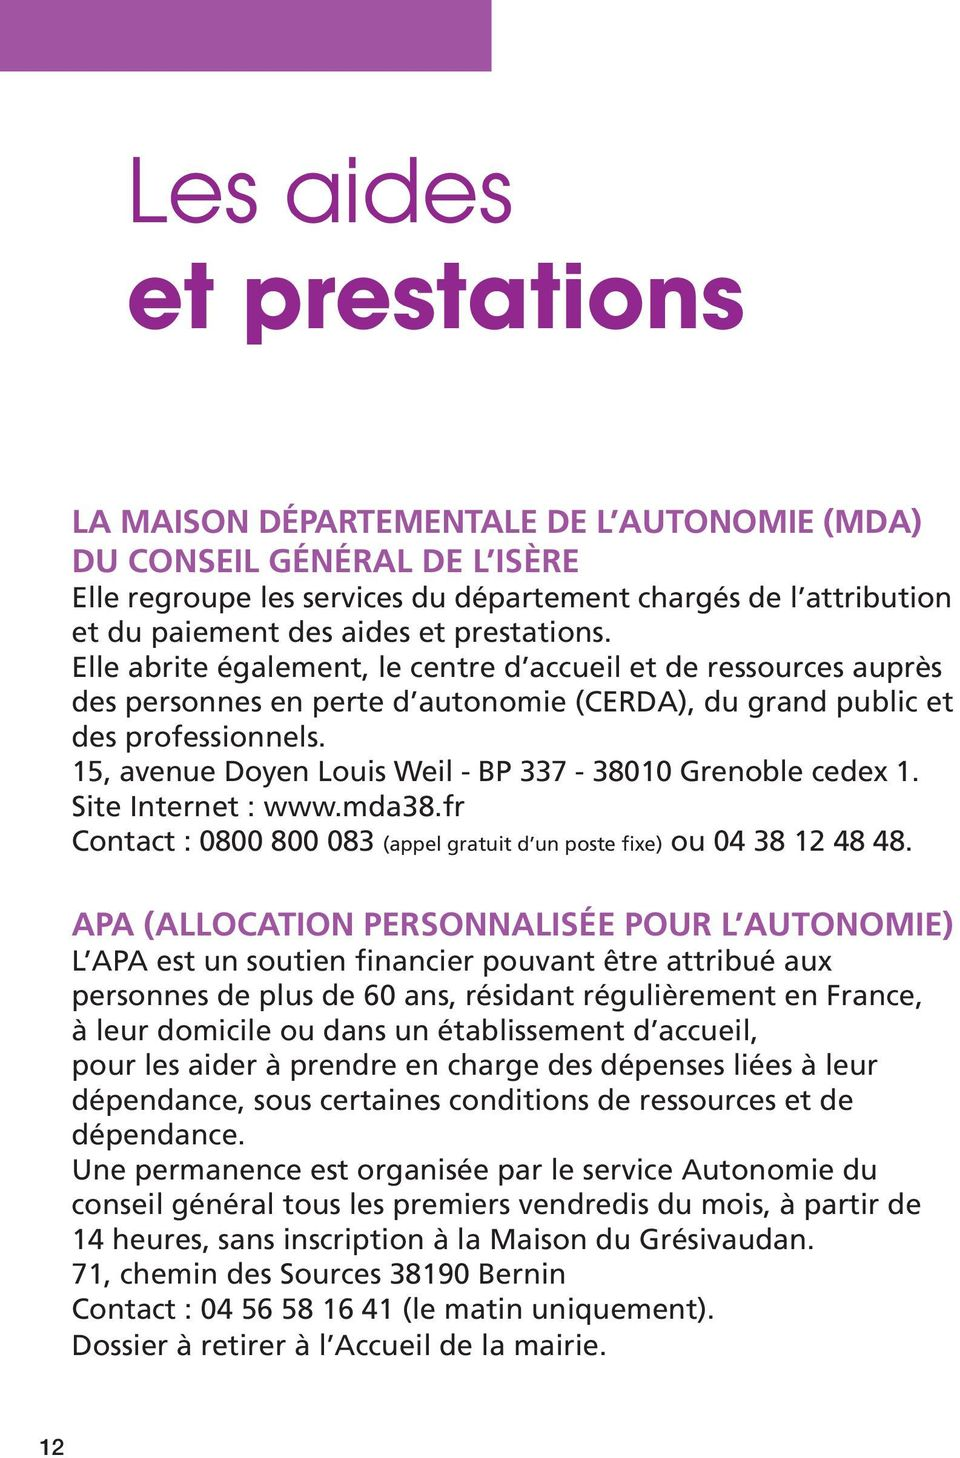 15, avenue Doyen Louis Weil - BP 337-38010 Grenoble cedex 1. Site Internet : www.mda38.fr Contact : 0800 800 083 (appel gratuit d un poste fixe) ou 04 38 12 48 48.